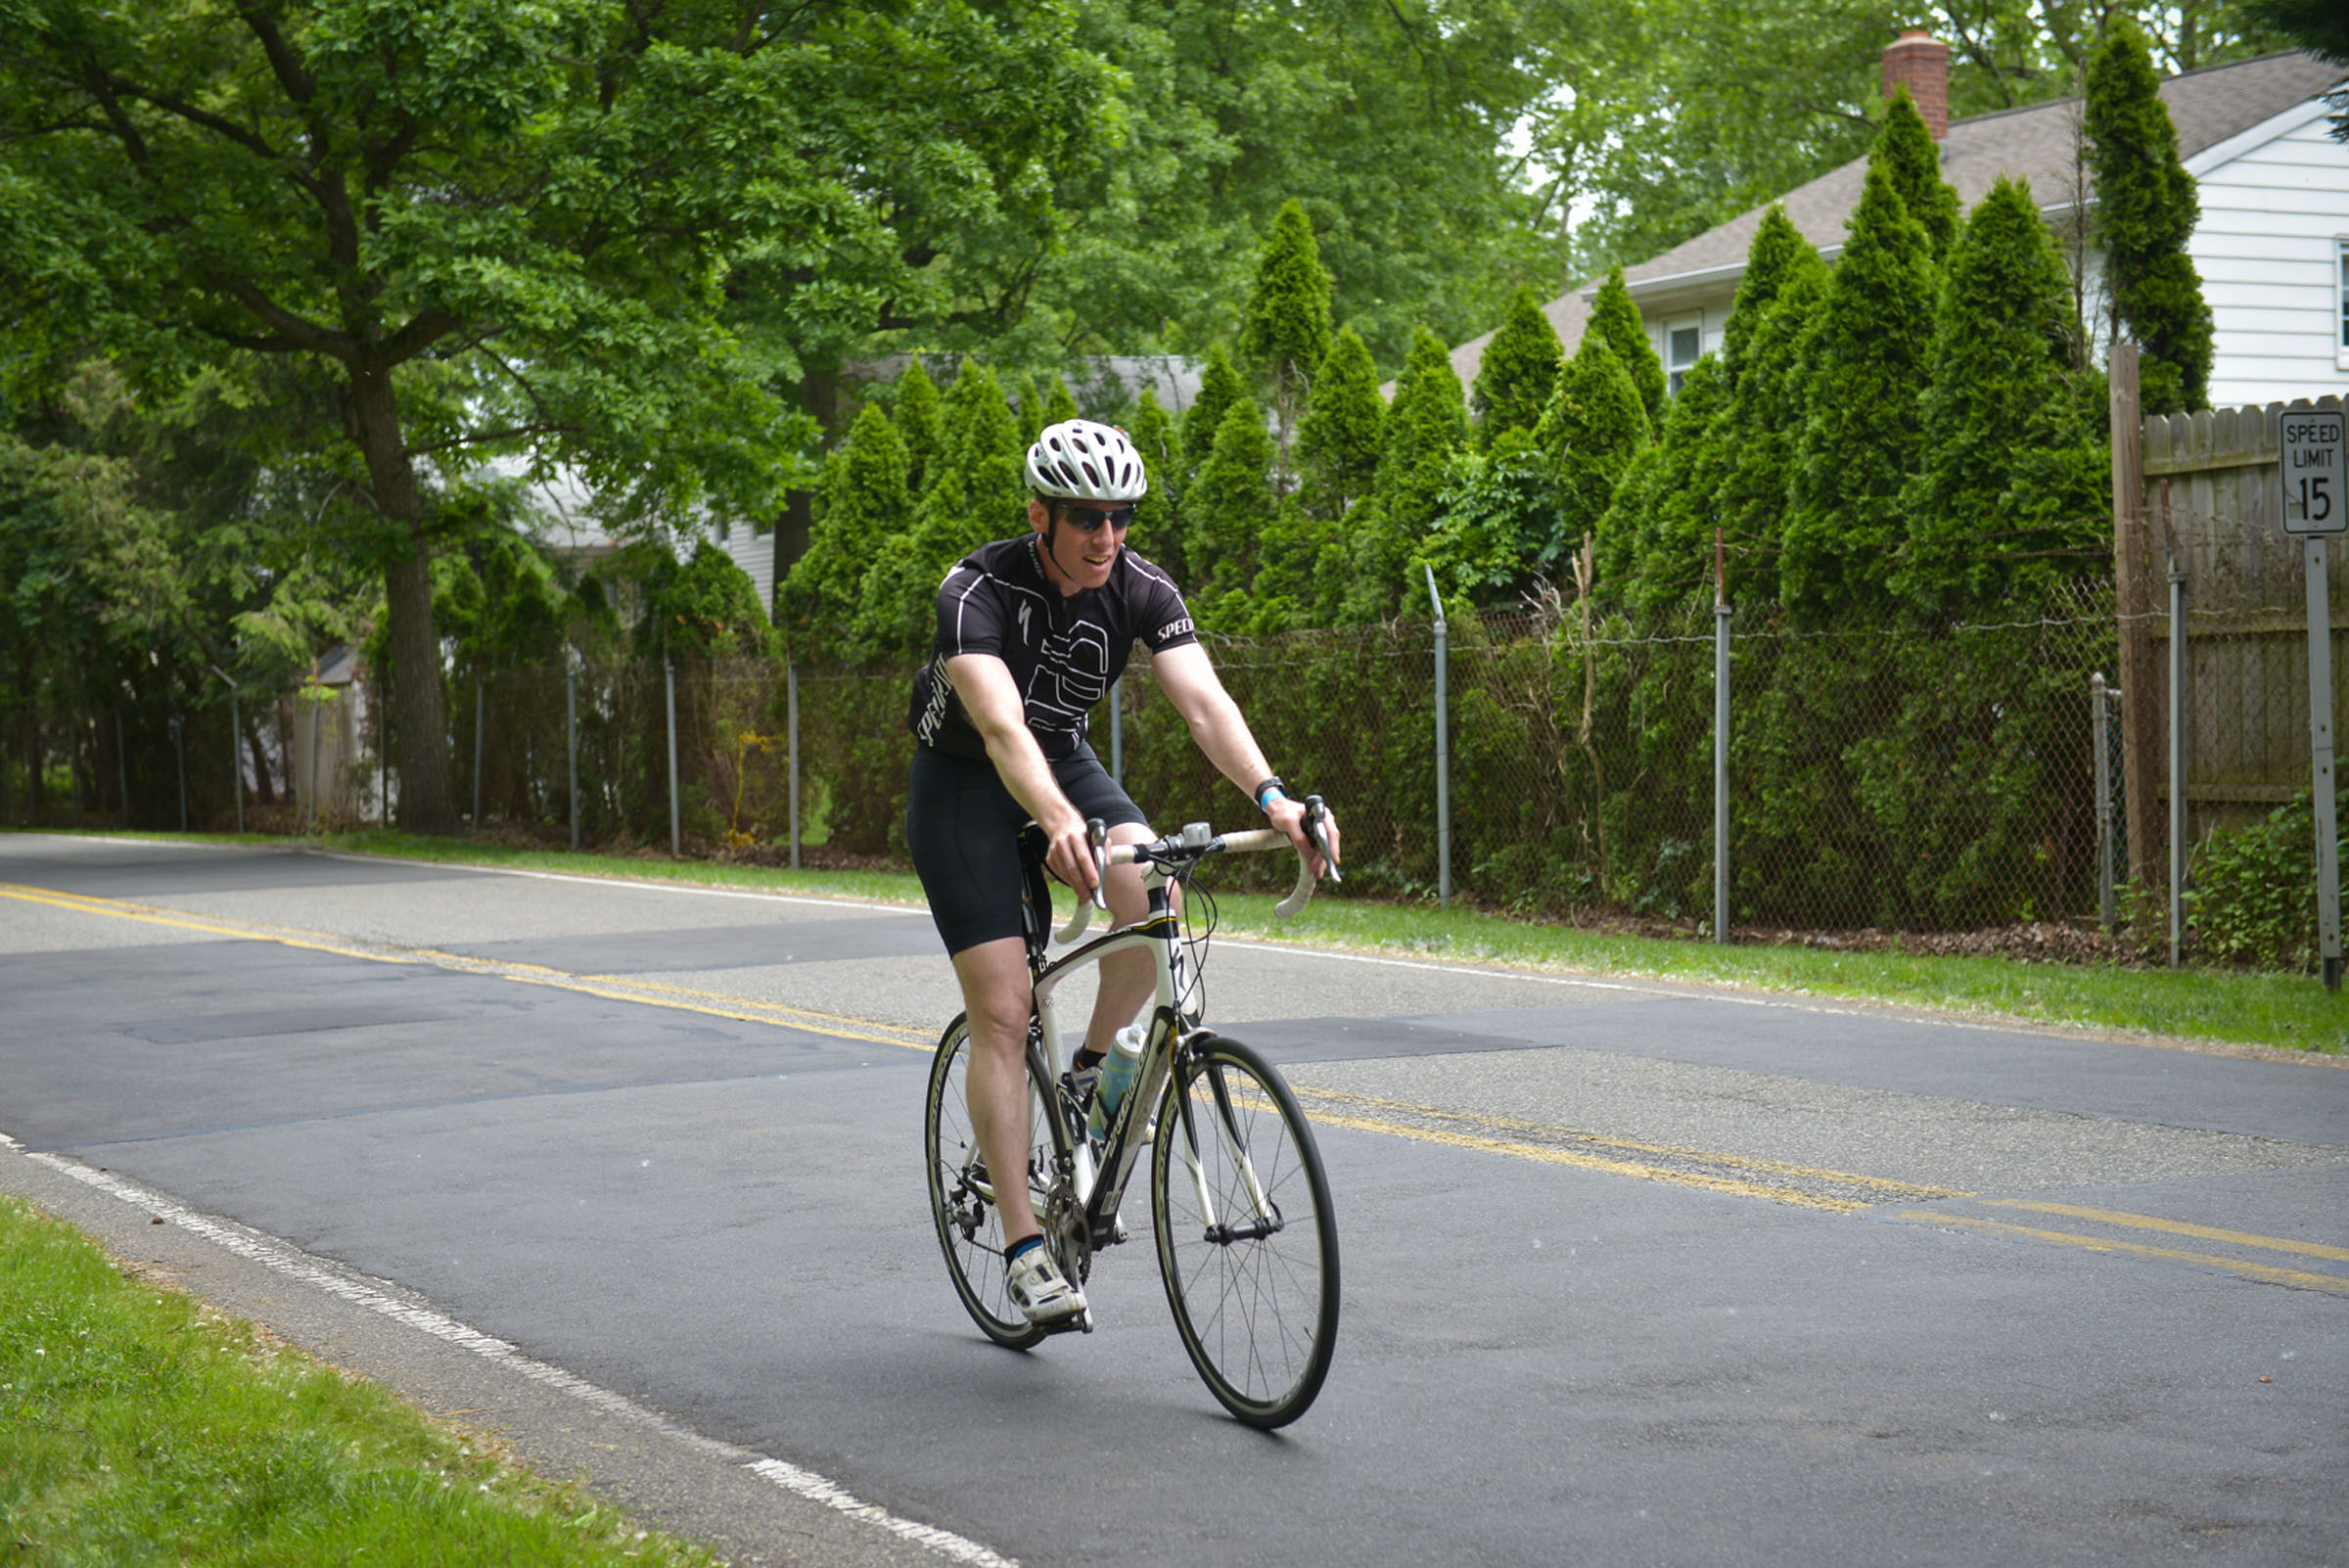 2017-06-04 GTD4A Charity Bike Ride - BCC - Paramus NJ-2401.jpg